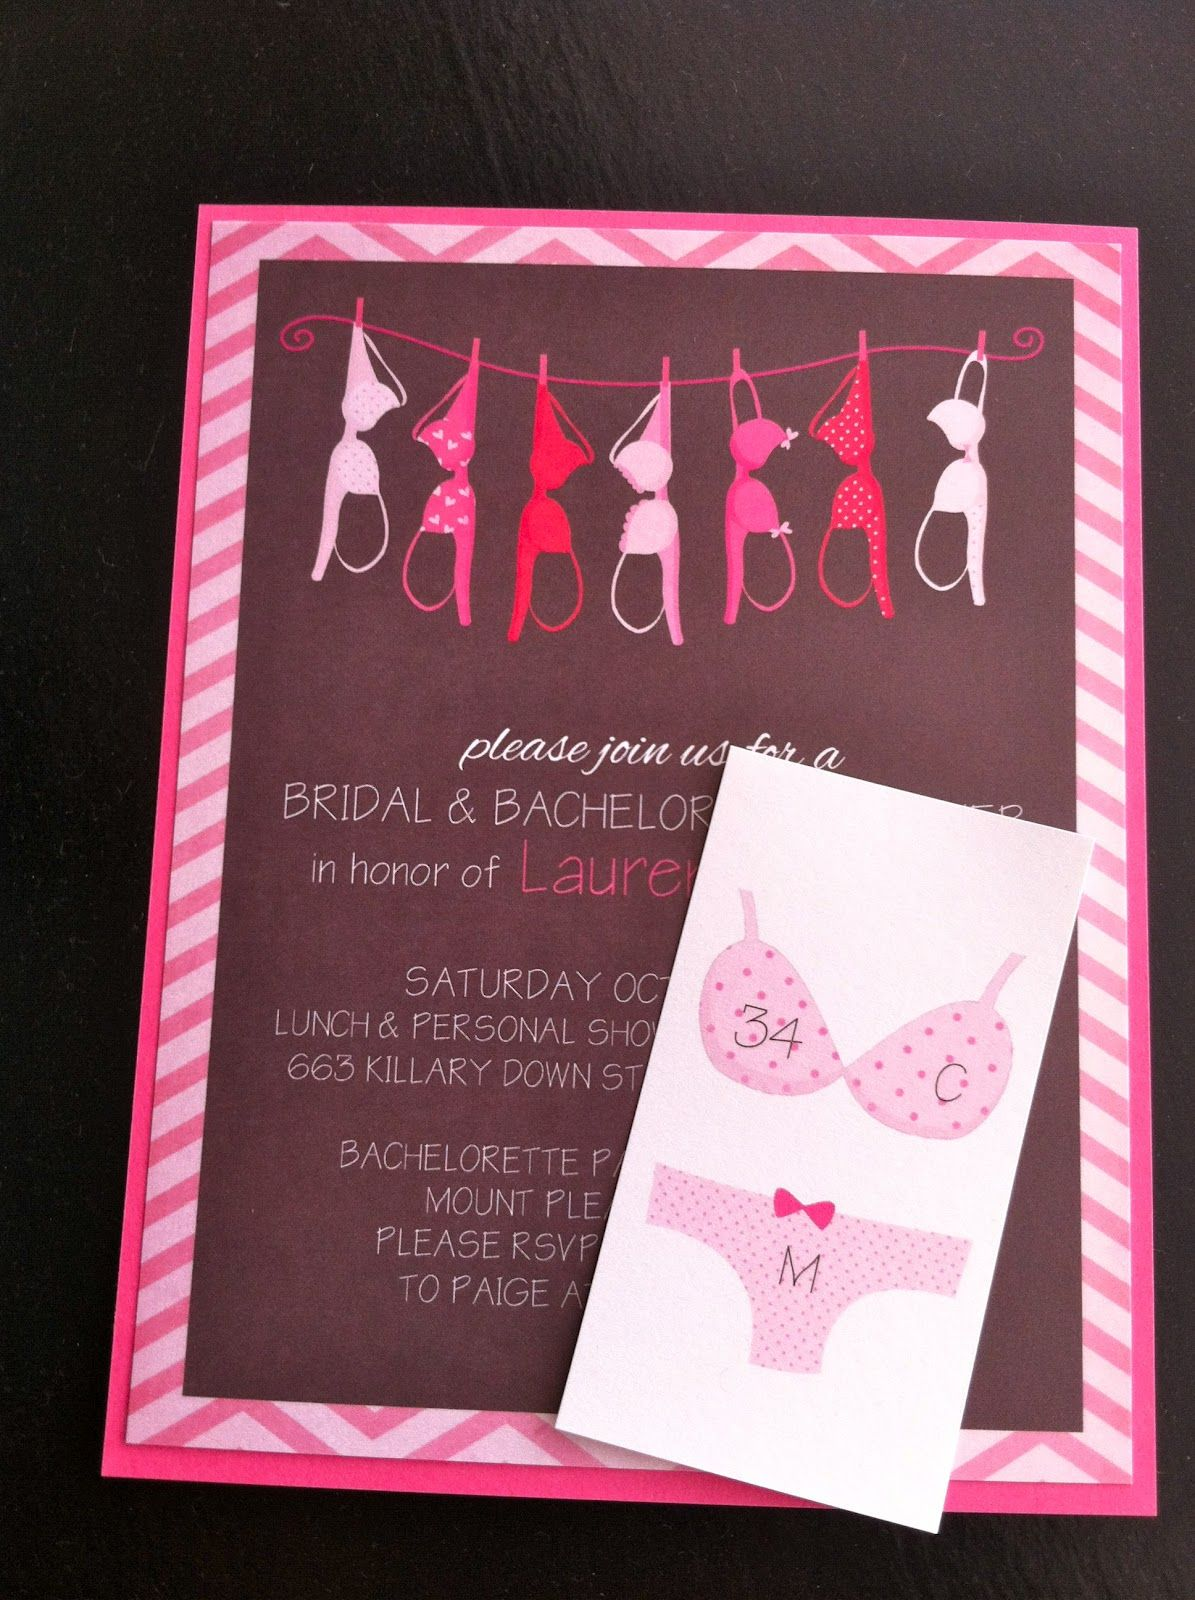 Cute bachelorette invites | Mrs. DiSano | Pinterest | Bachelorette ...